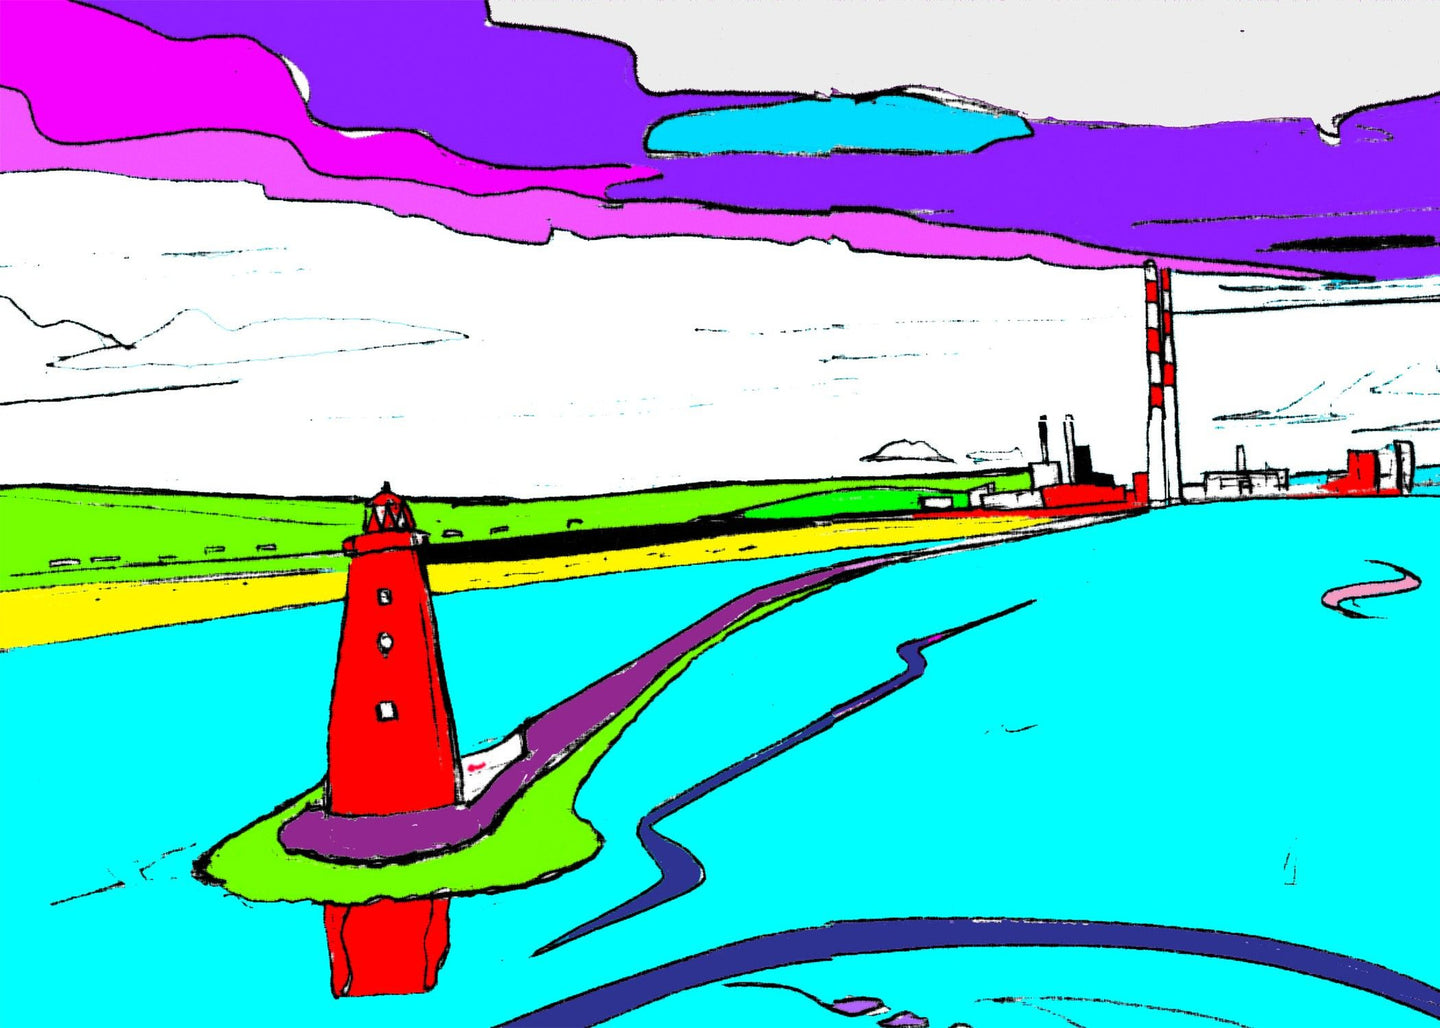 Poolbeg From the Sea